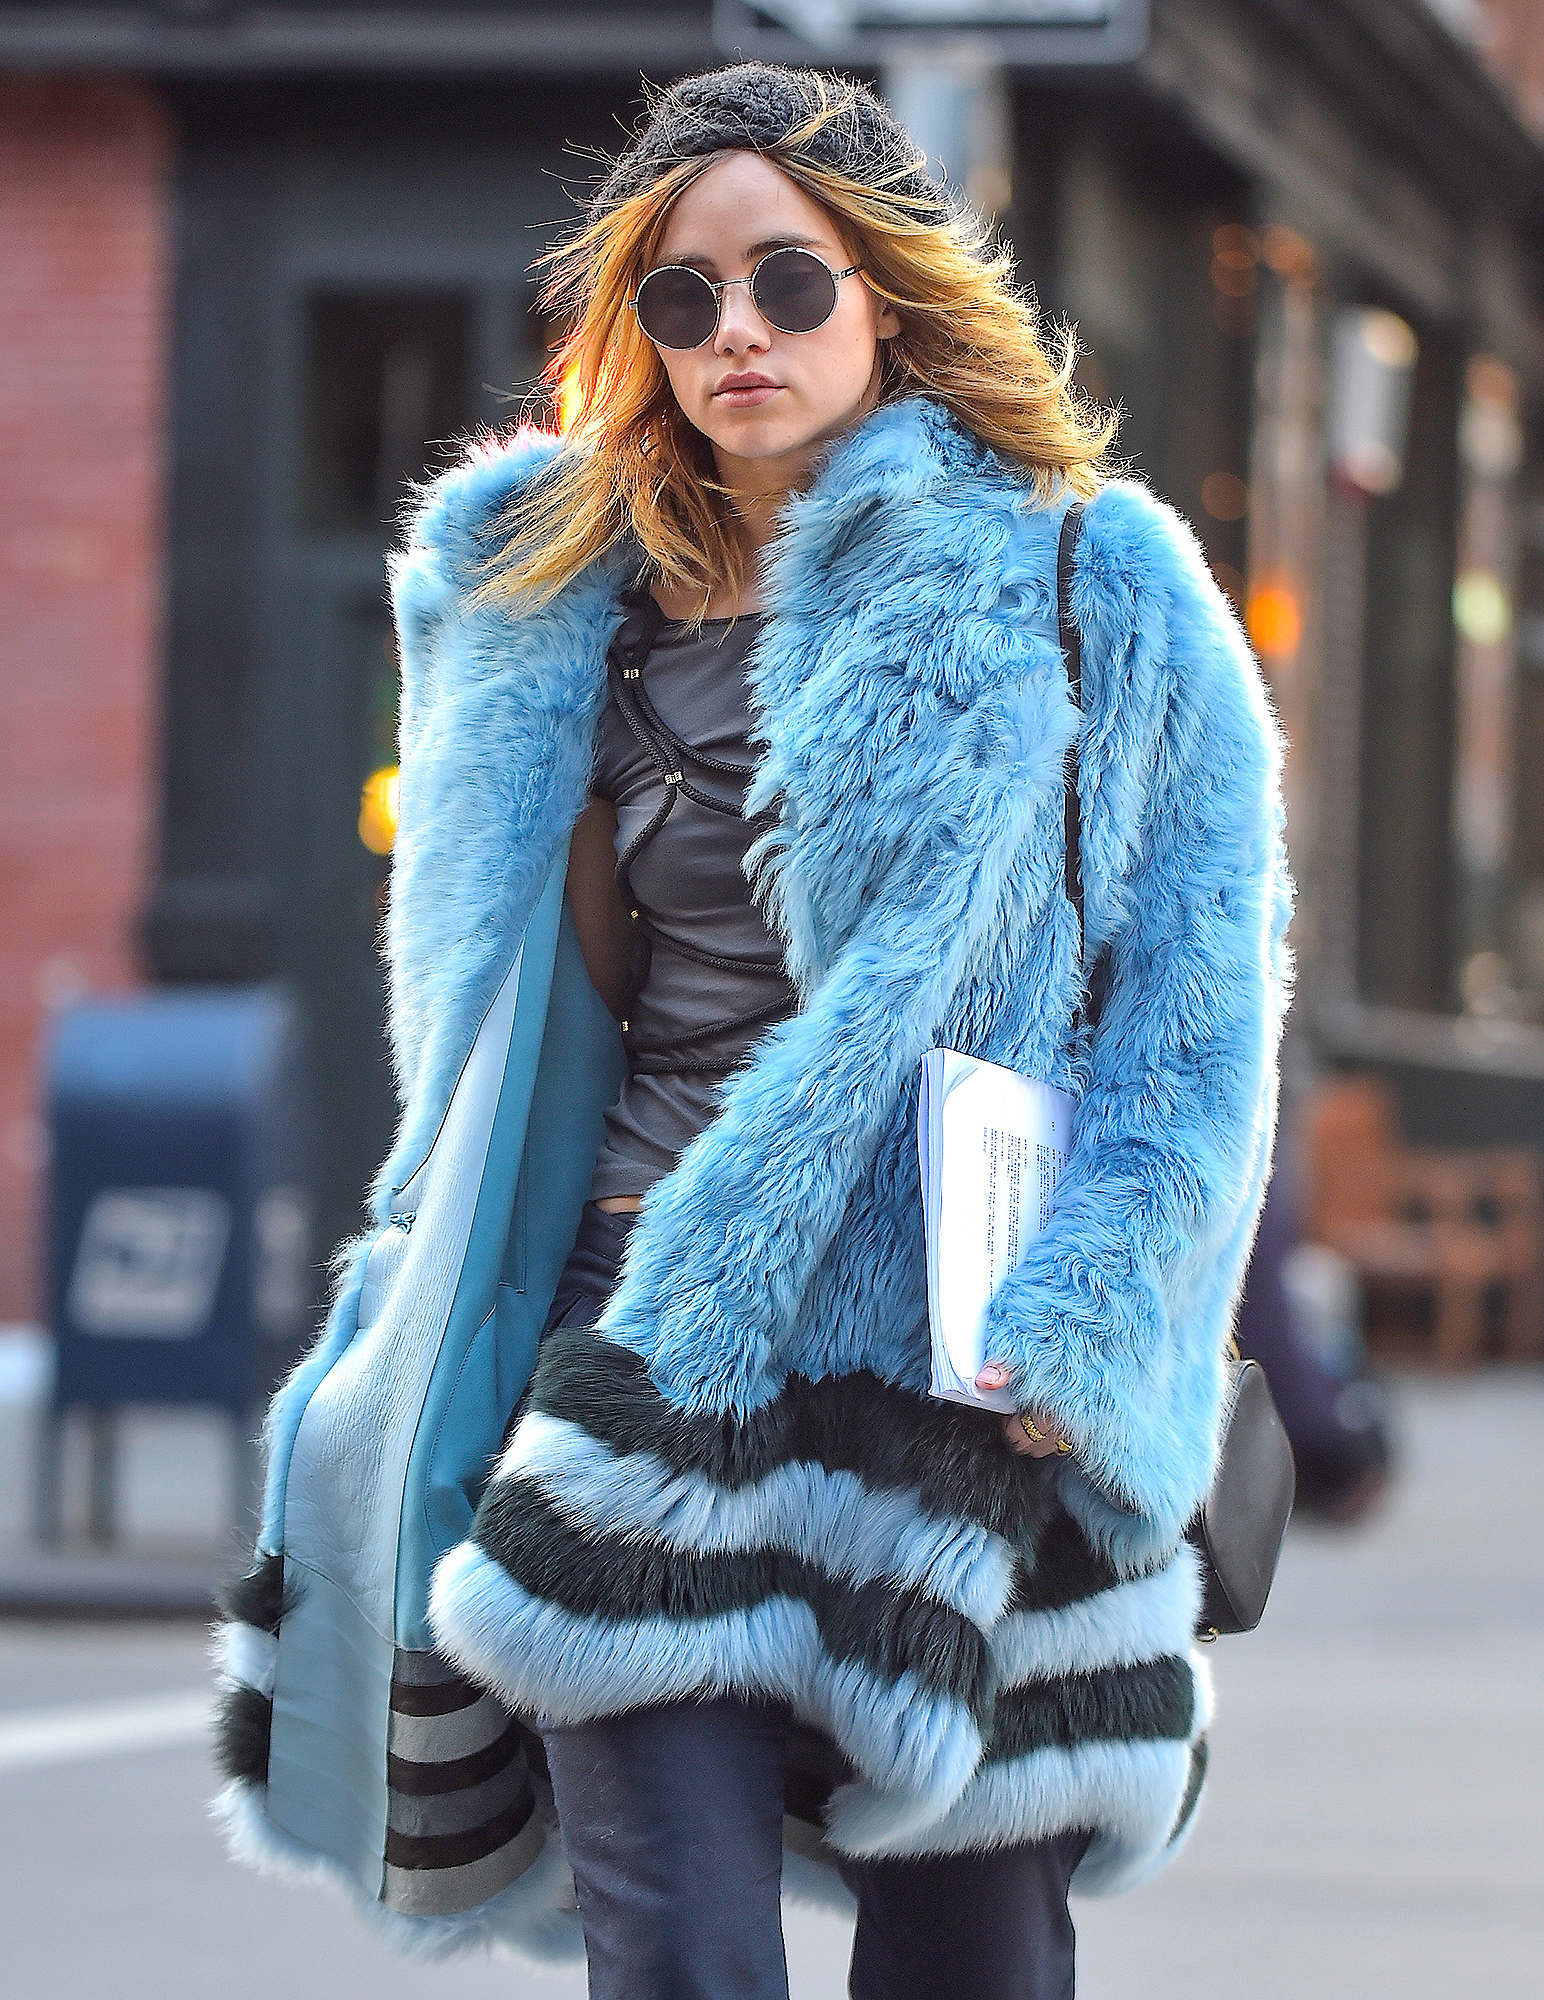 EXCLUSIVE: Suki Waterhouse is Spotted Wearing a Fantastic Blue Coat in Soho